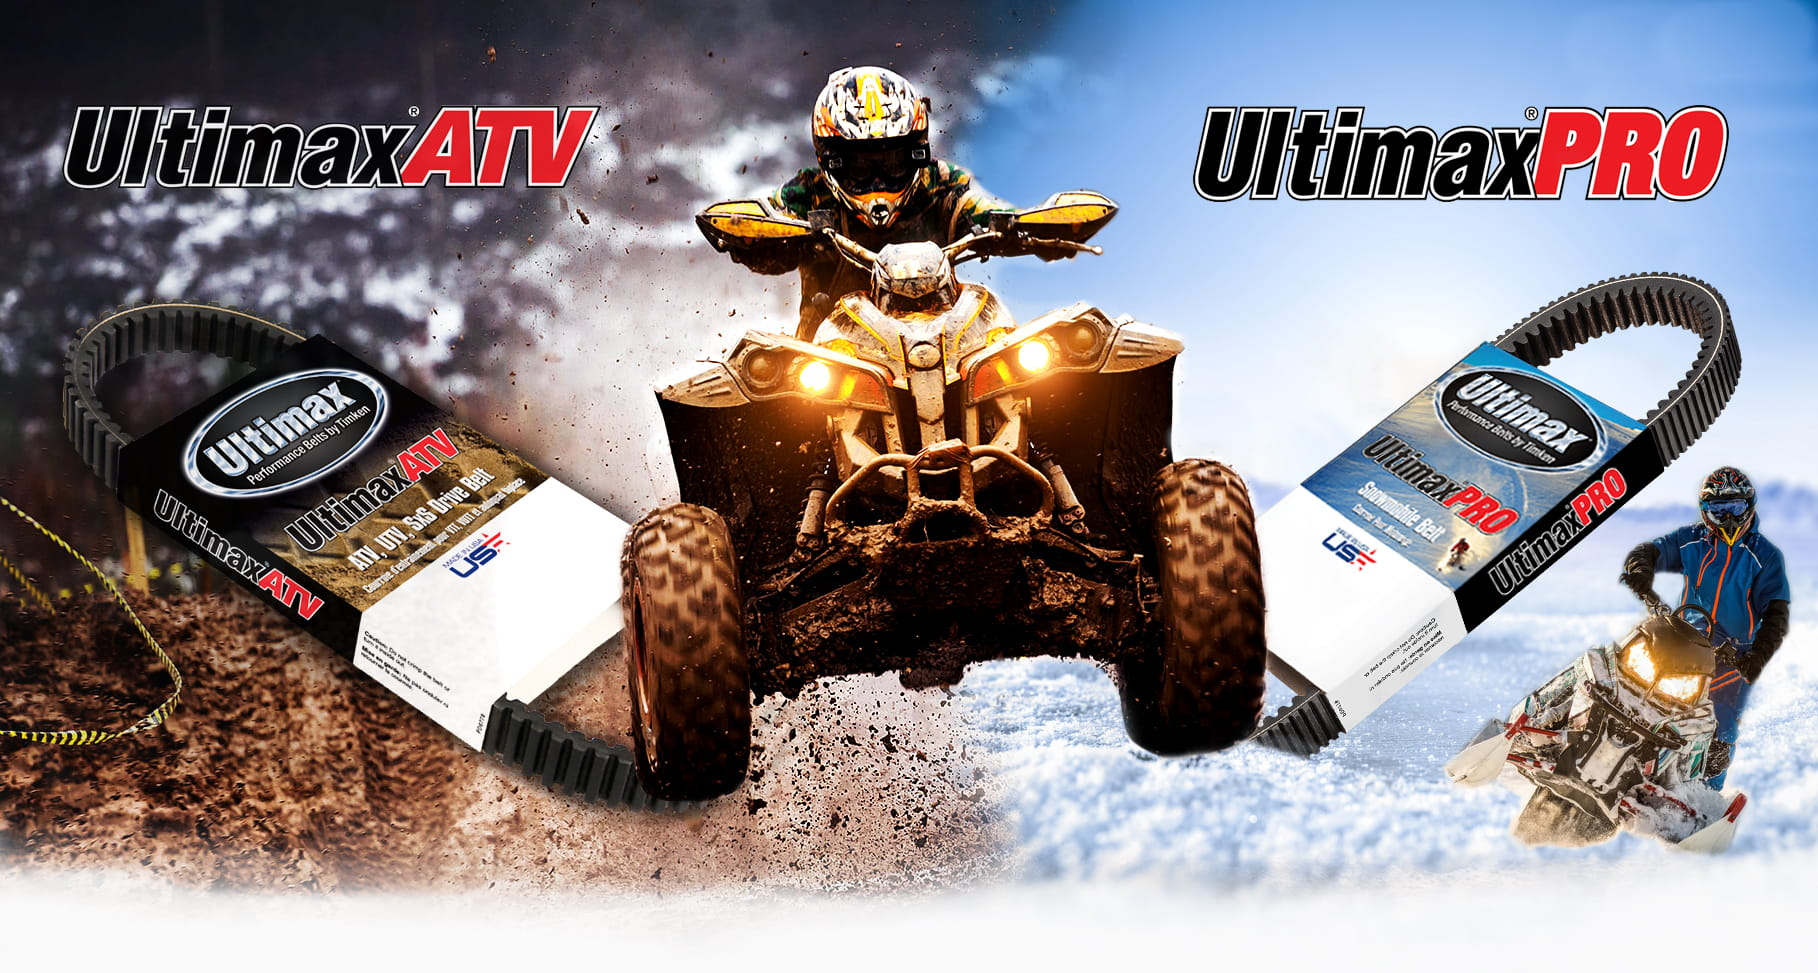 Powersports Belts by Ultimax - ATV Belts, UTV Belts, Snowmobile Belts